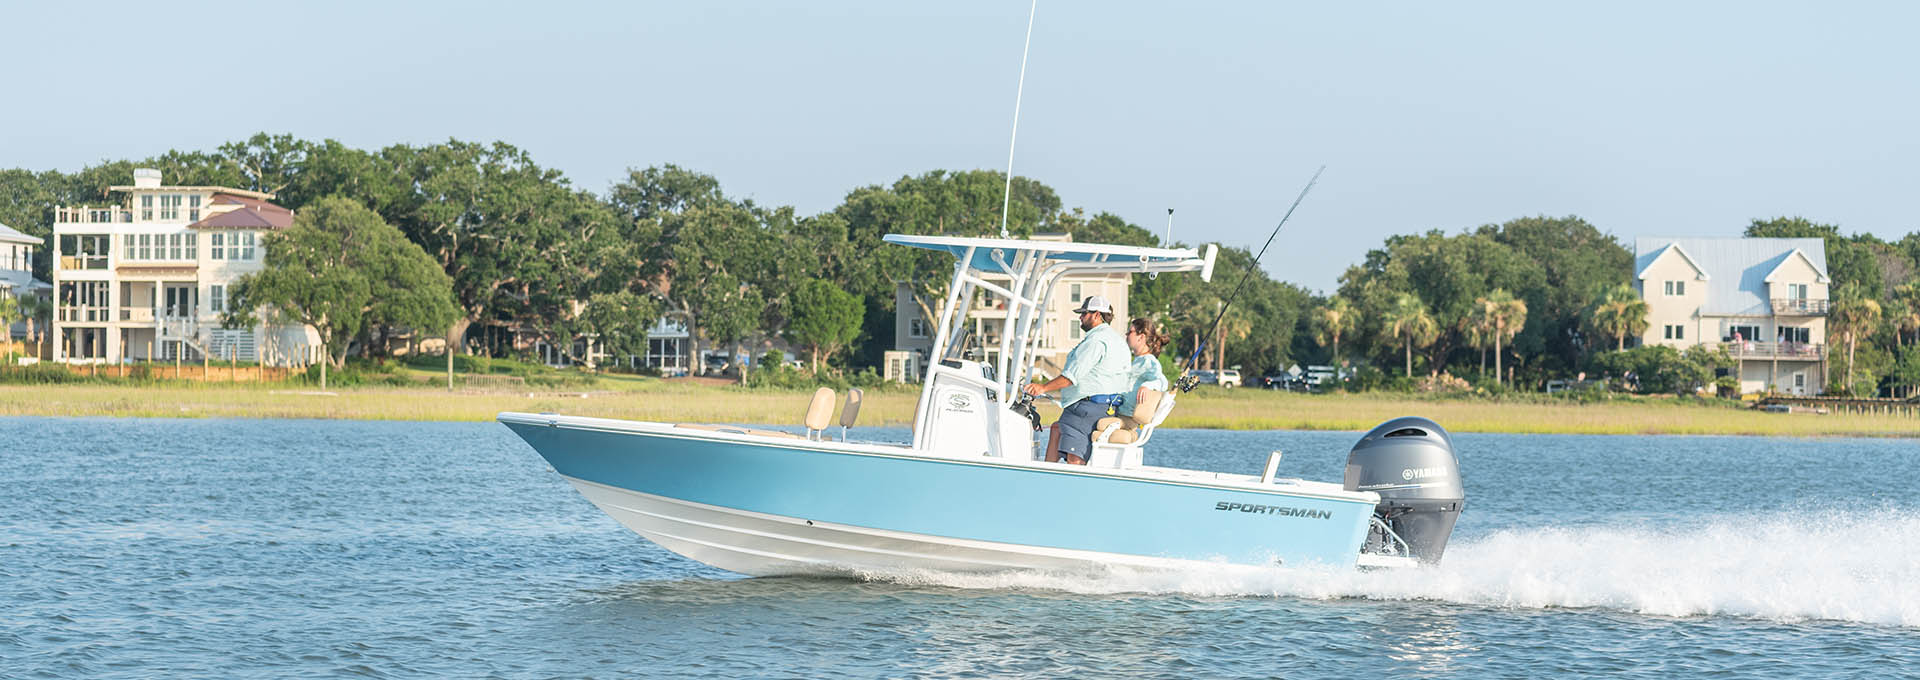 Slide show of images of the Masters 227 Bay Boat. This is image number 1.